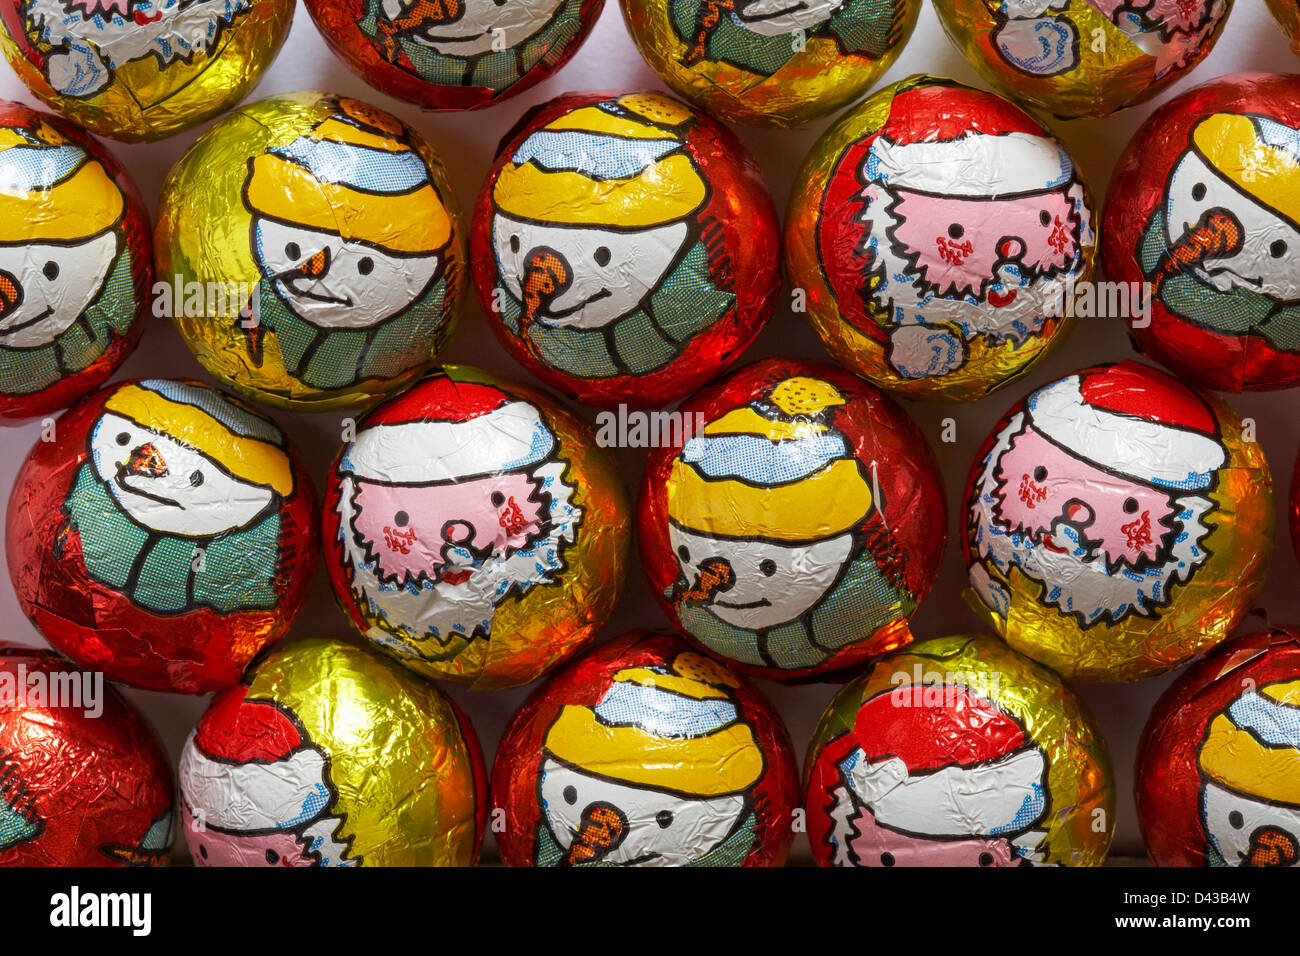 Christmas foil wrapped chocolate balls with snowmen and Father Christmas, Santa Claus, on chocolates ready for Christmas - Stock Image